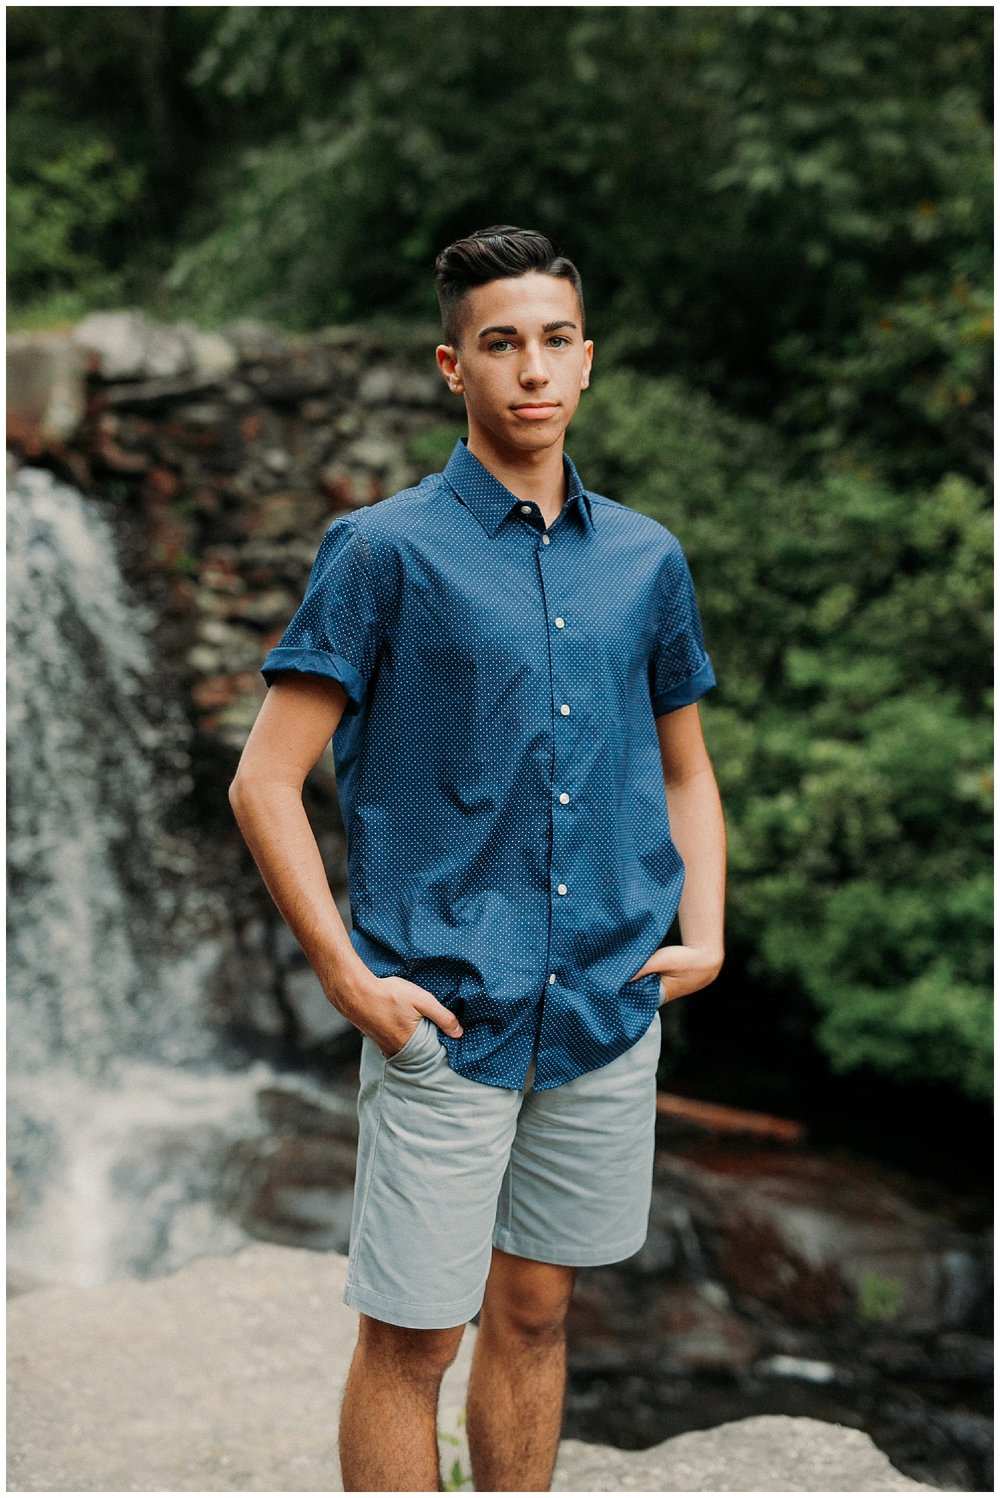 lindybeth photography - senior pictures - mason-7.jpg